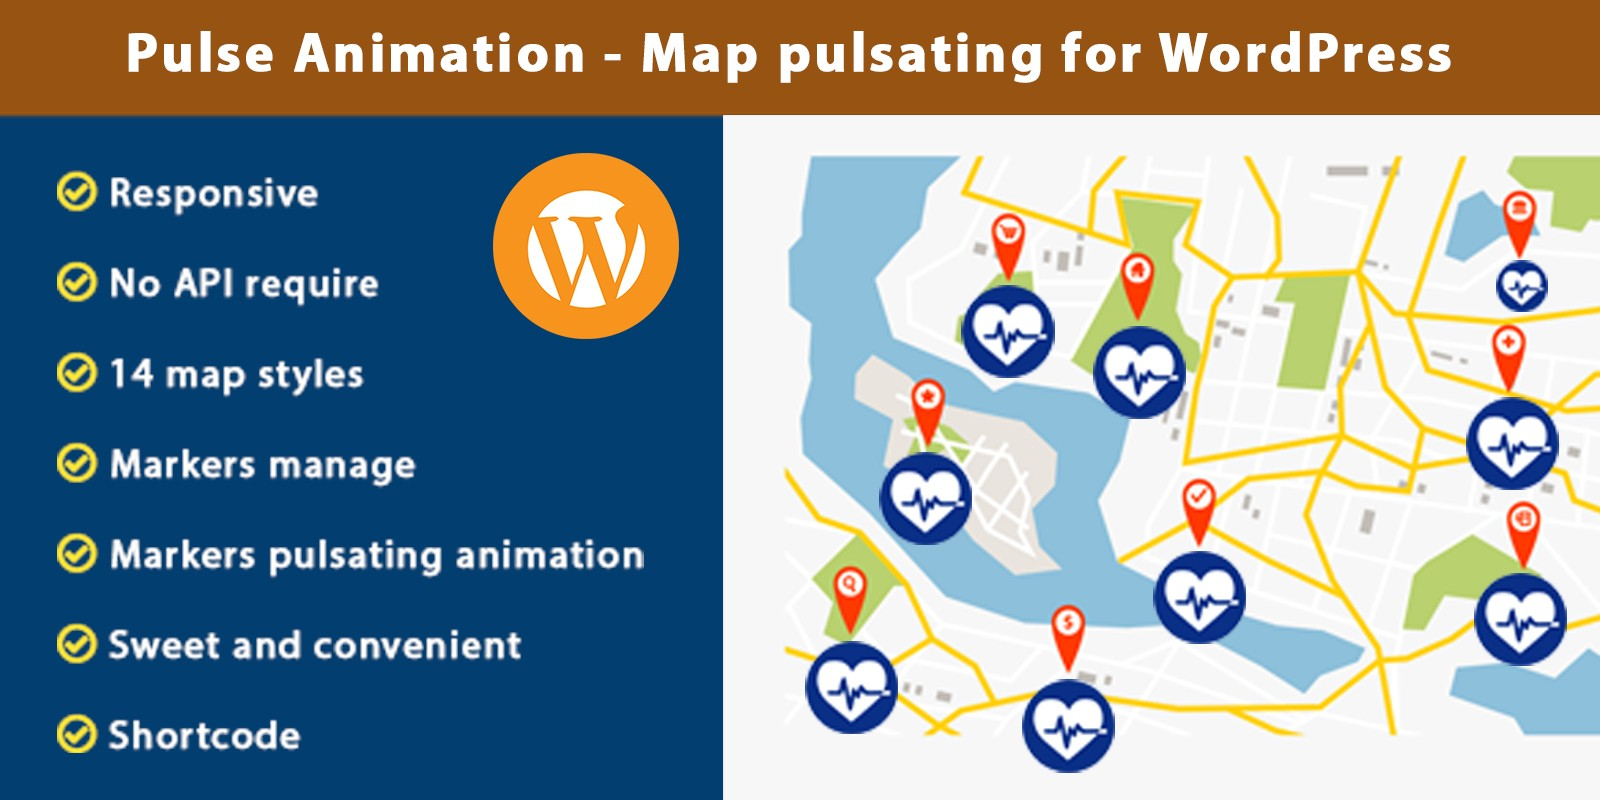 Pulse Animation - Map pulsating For WordPress